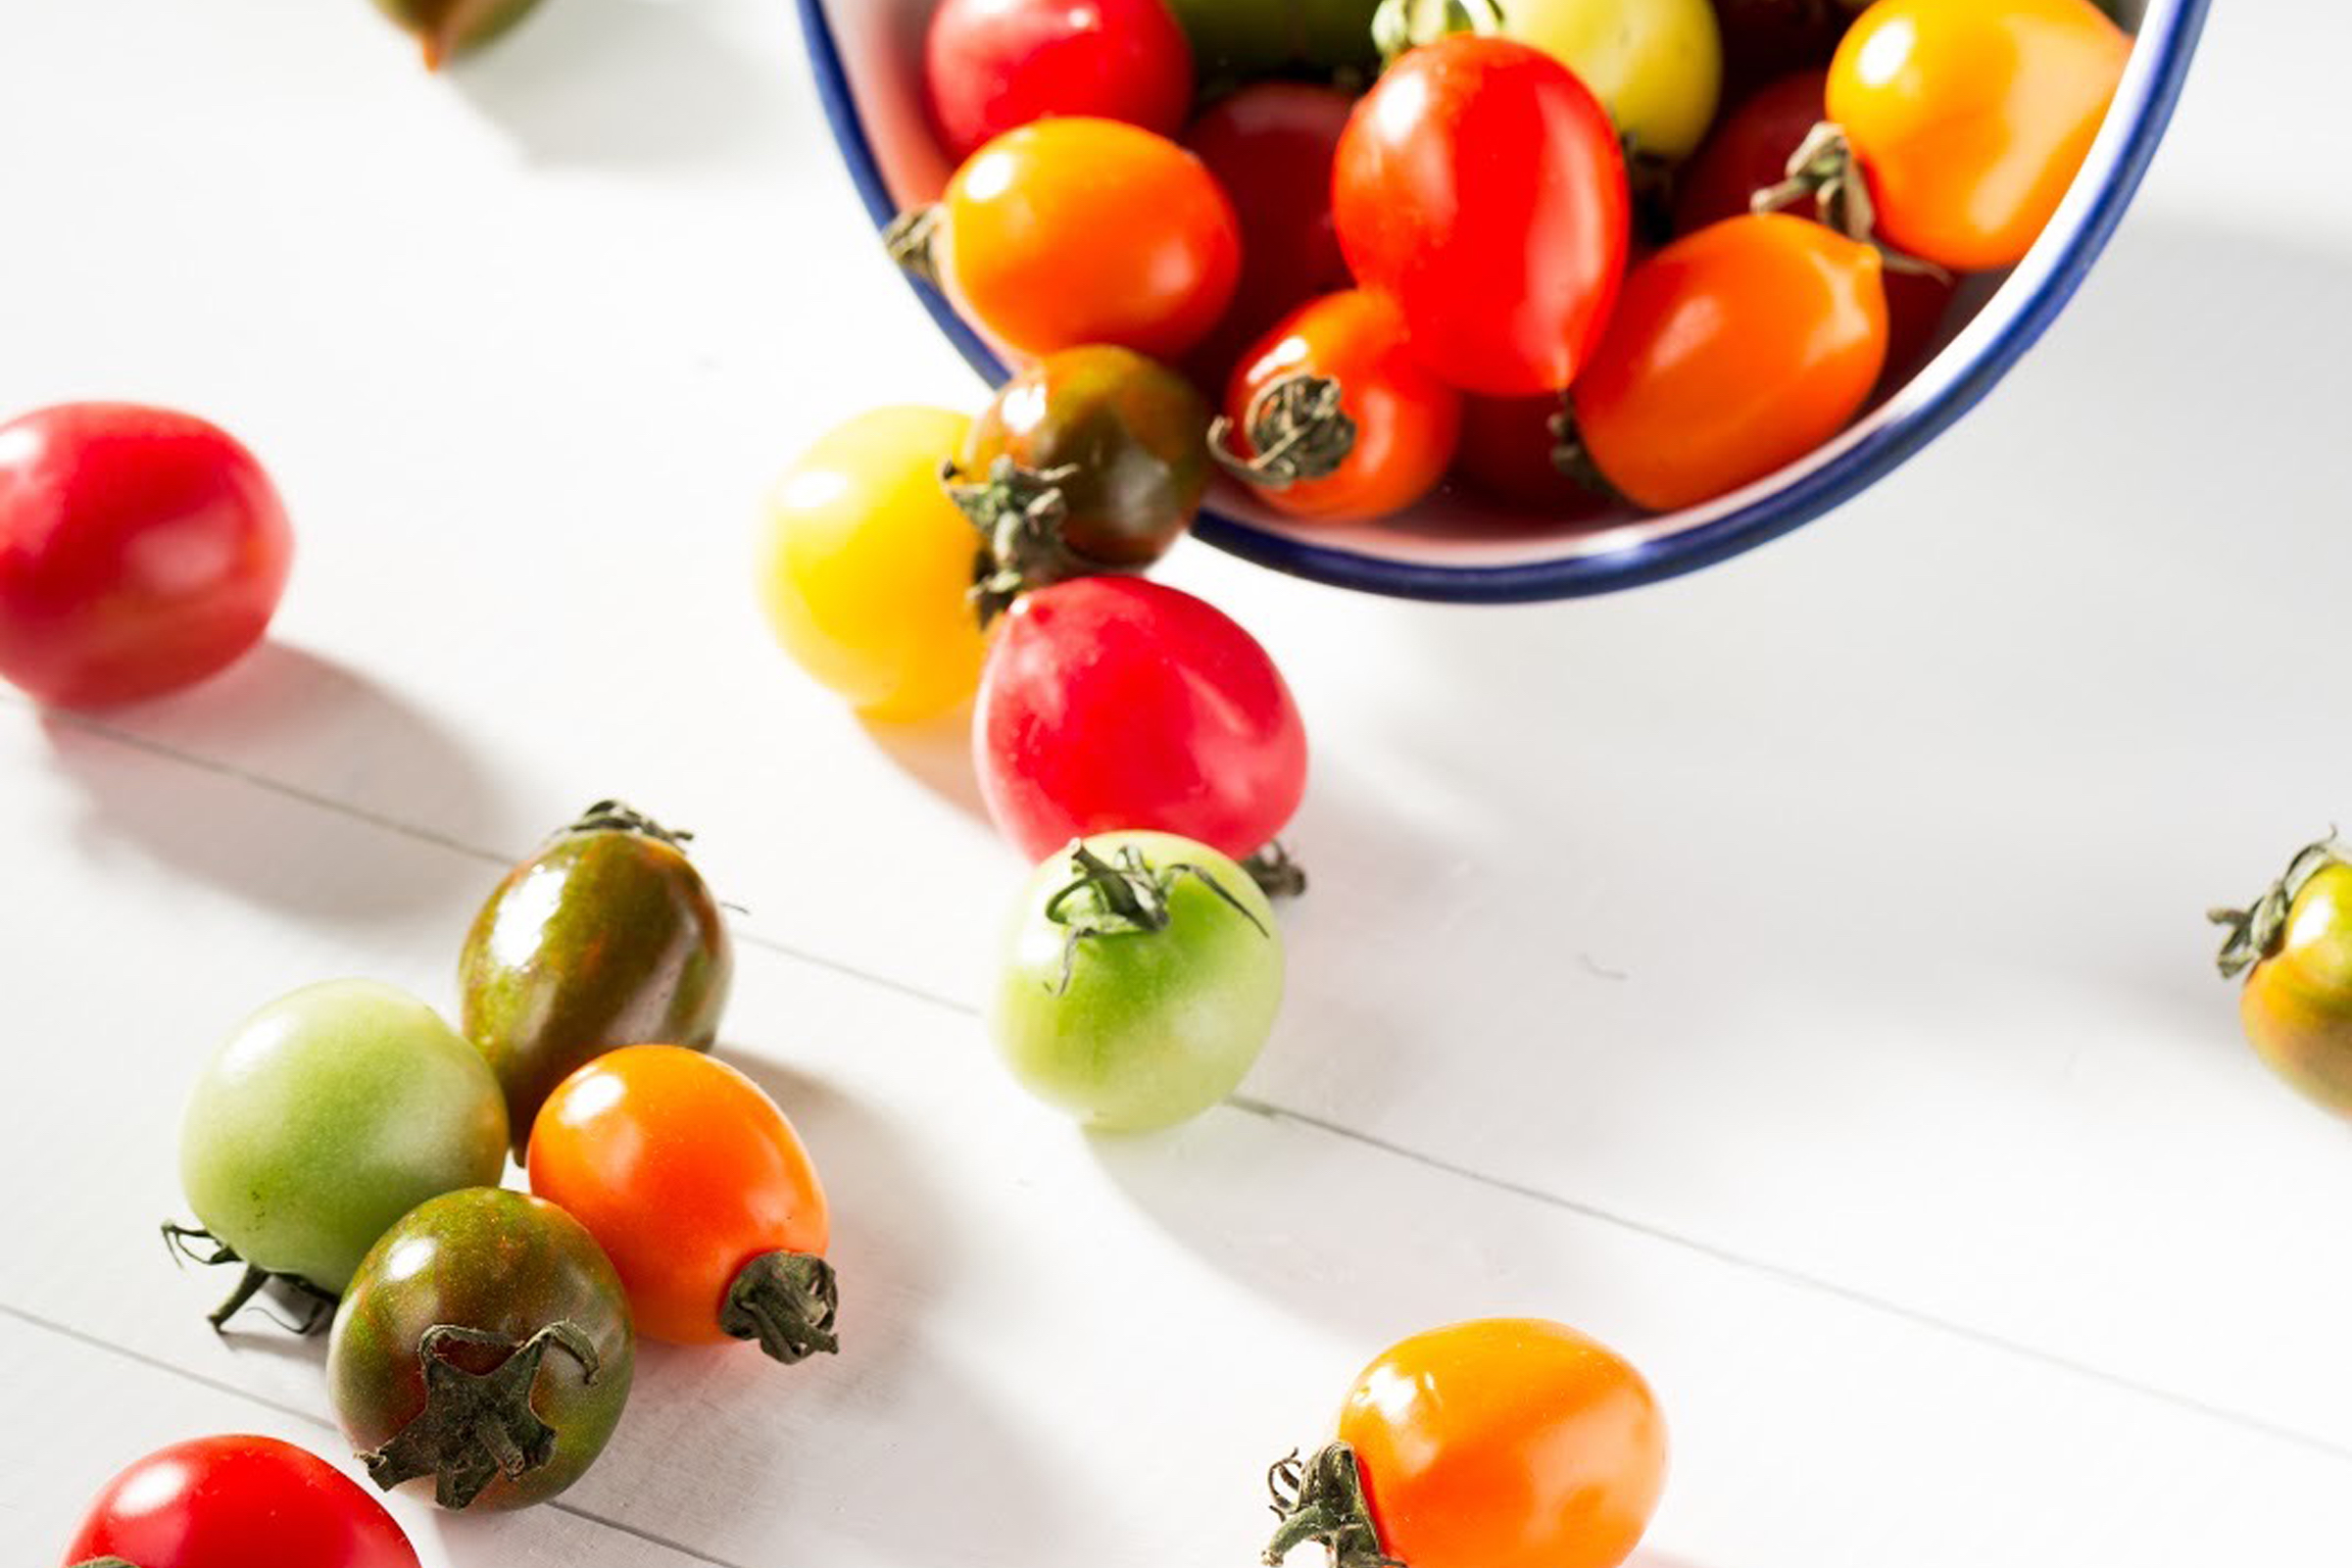 Bowl of fresh multi-colored cherry tomatoes spilling out onto countertop